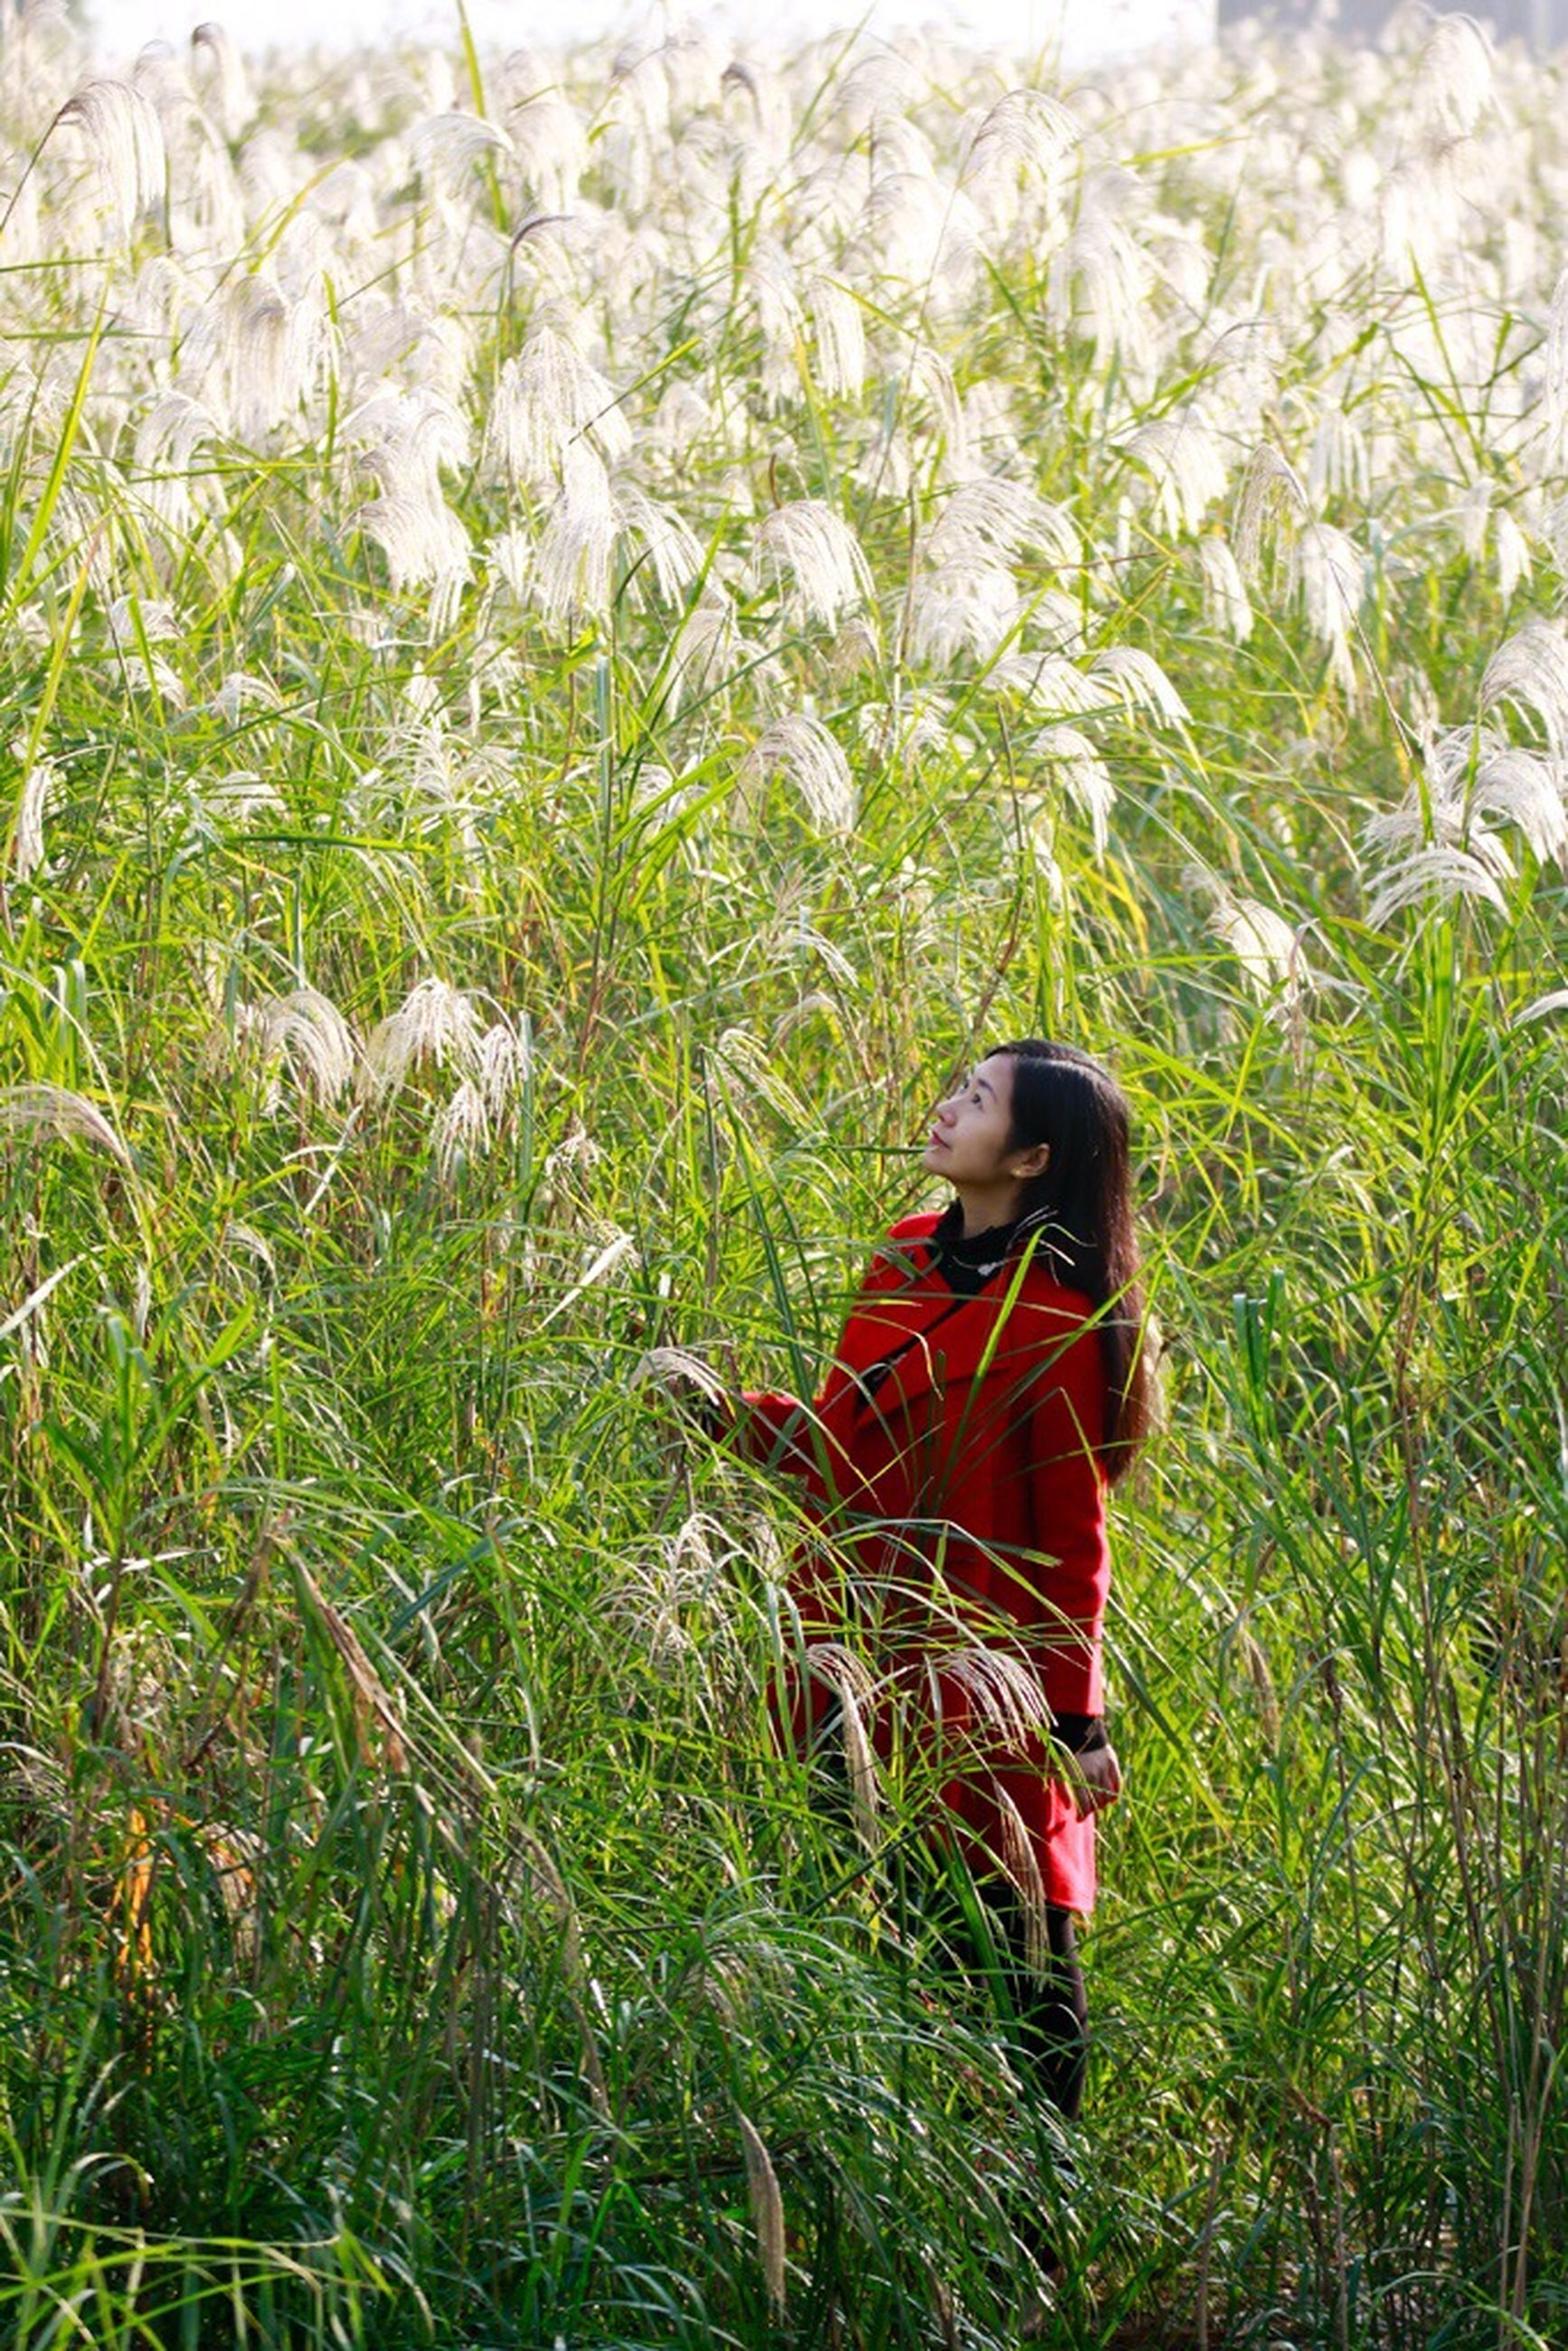 grass, one person, only women, tree, outdoors, beauty, one woman only, adult, young adult, adults only, young women, people, nature, one young woman only, day